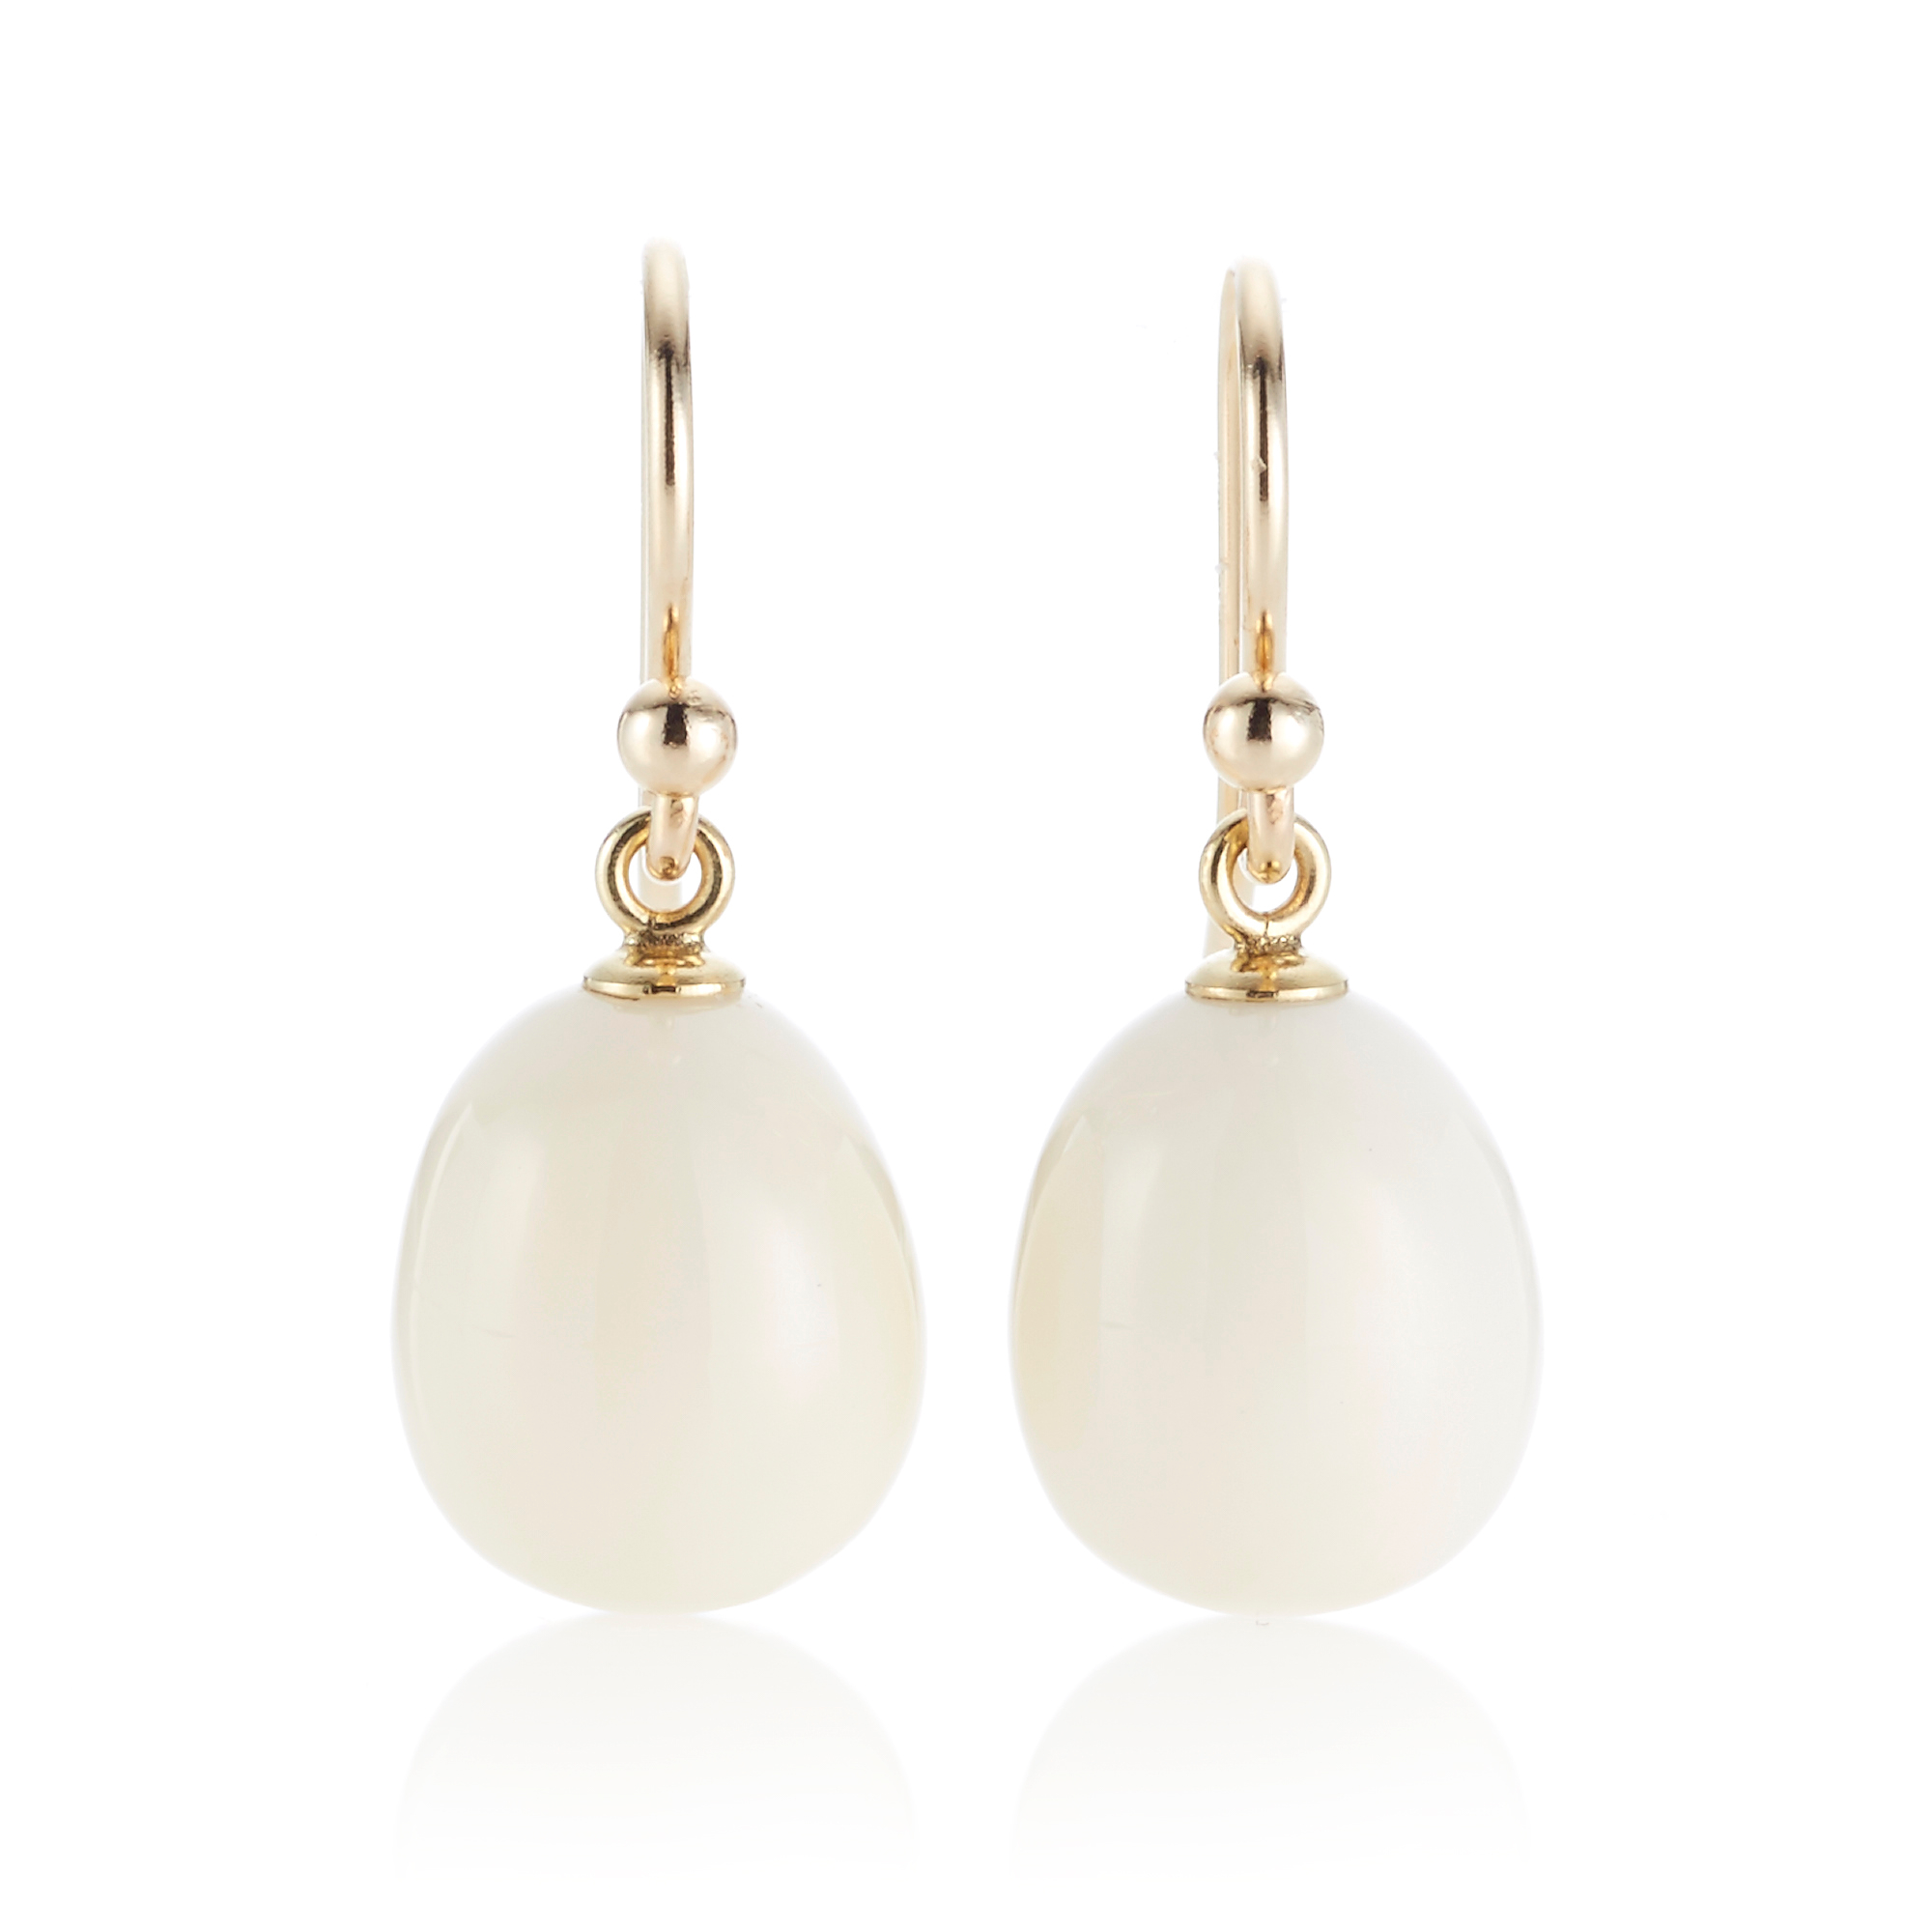 Gump's White Coral Drop Earrings